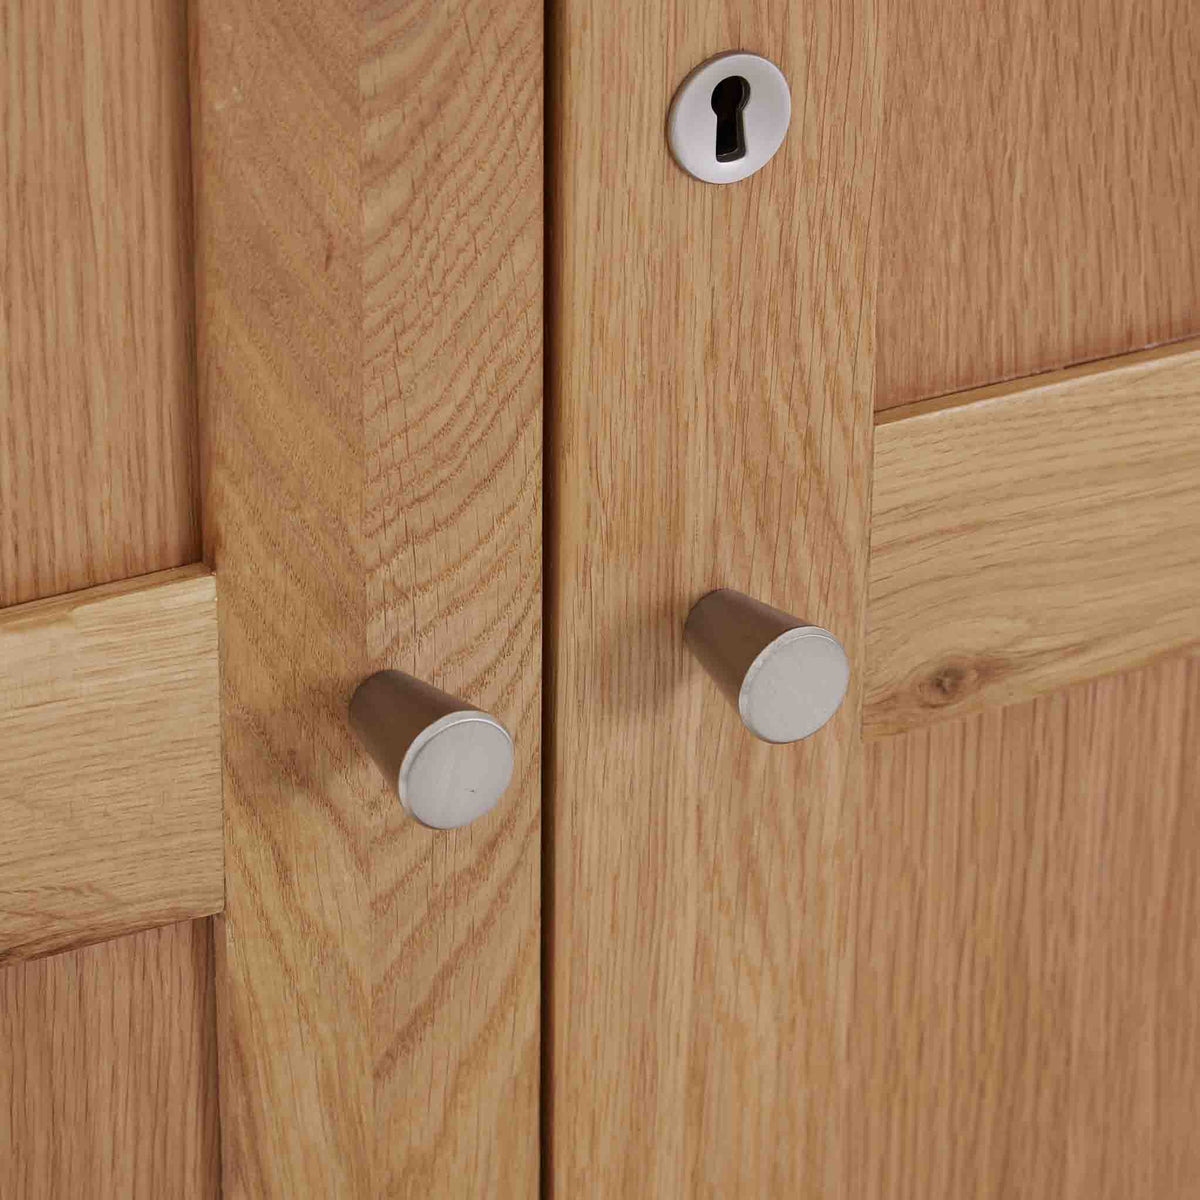 Falmouth Oak Double Wardrobe Close up of the chrome metal handles and door lock